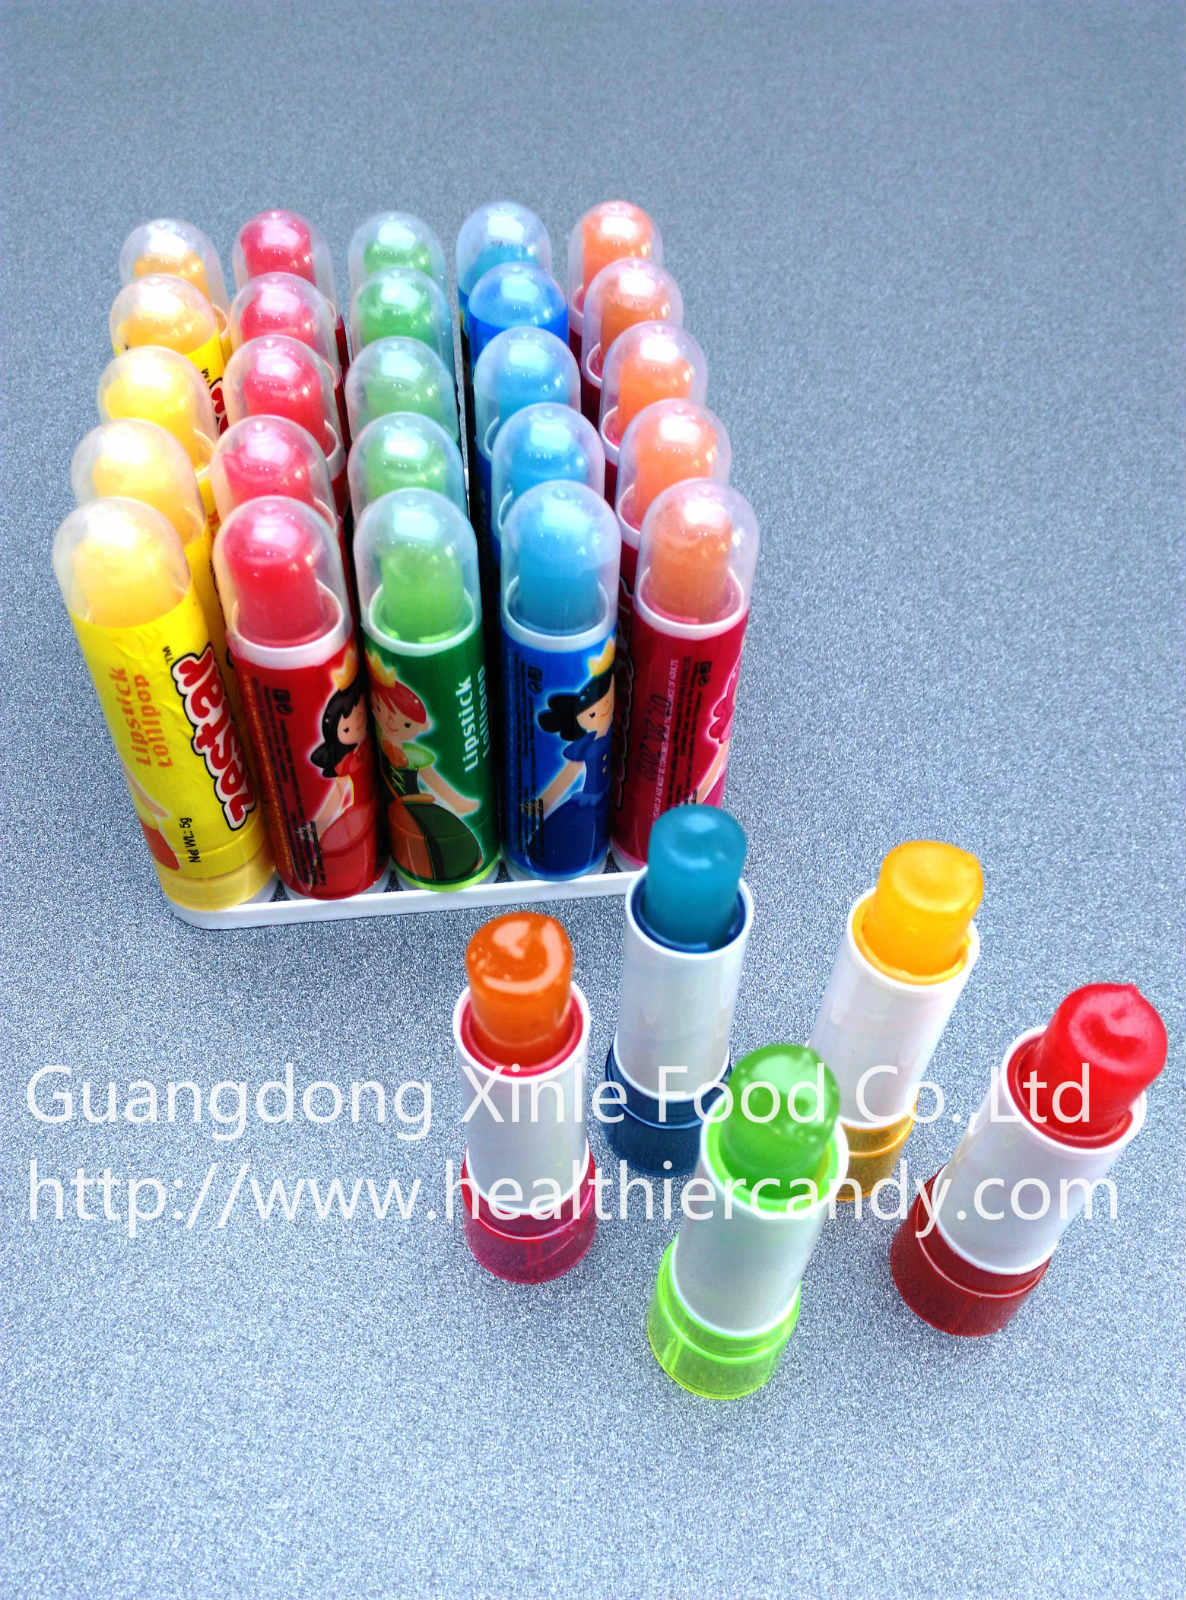 Hot Sale Lipstick Candy, Funny and Lovely shape, Fashionable Sweet Candy